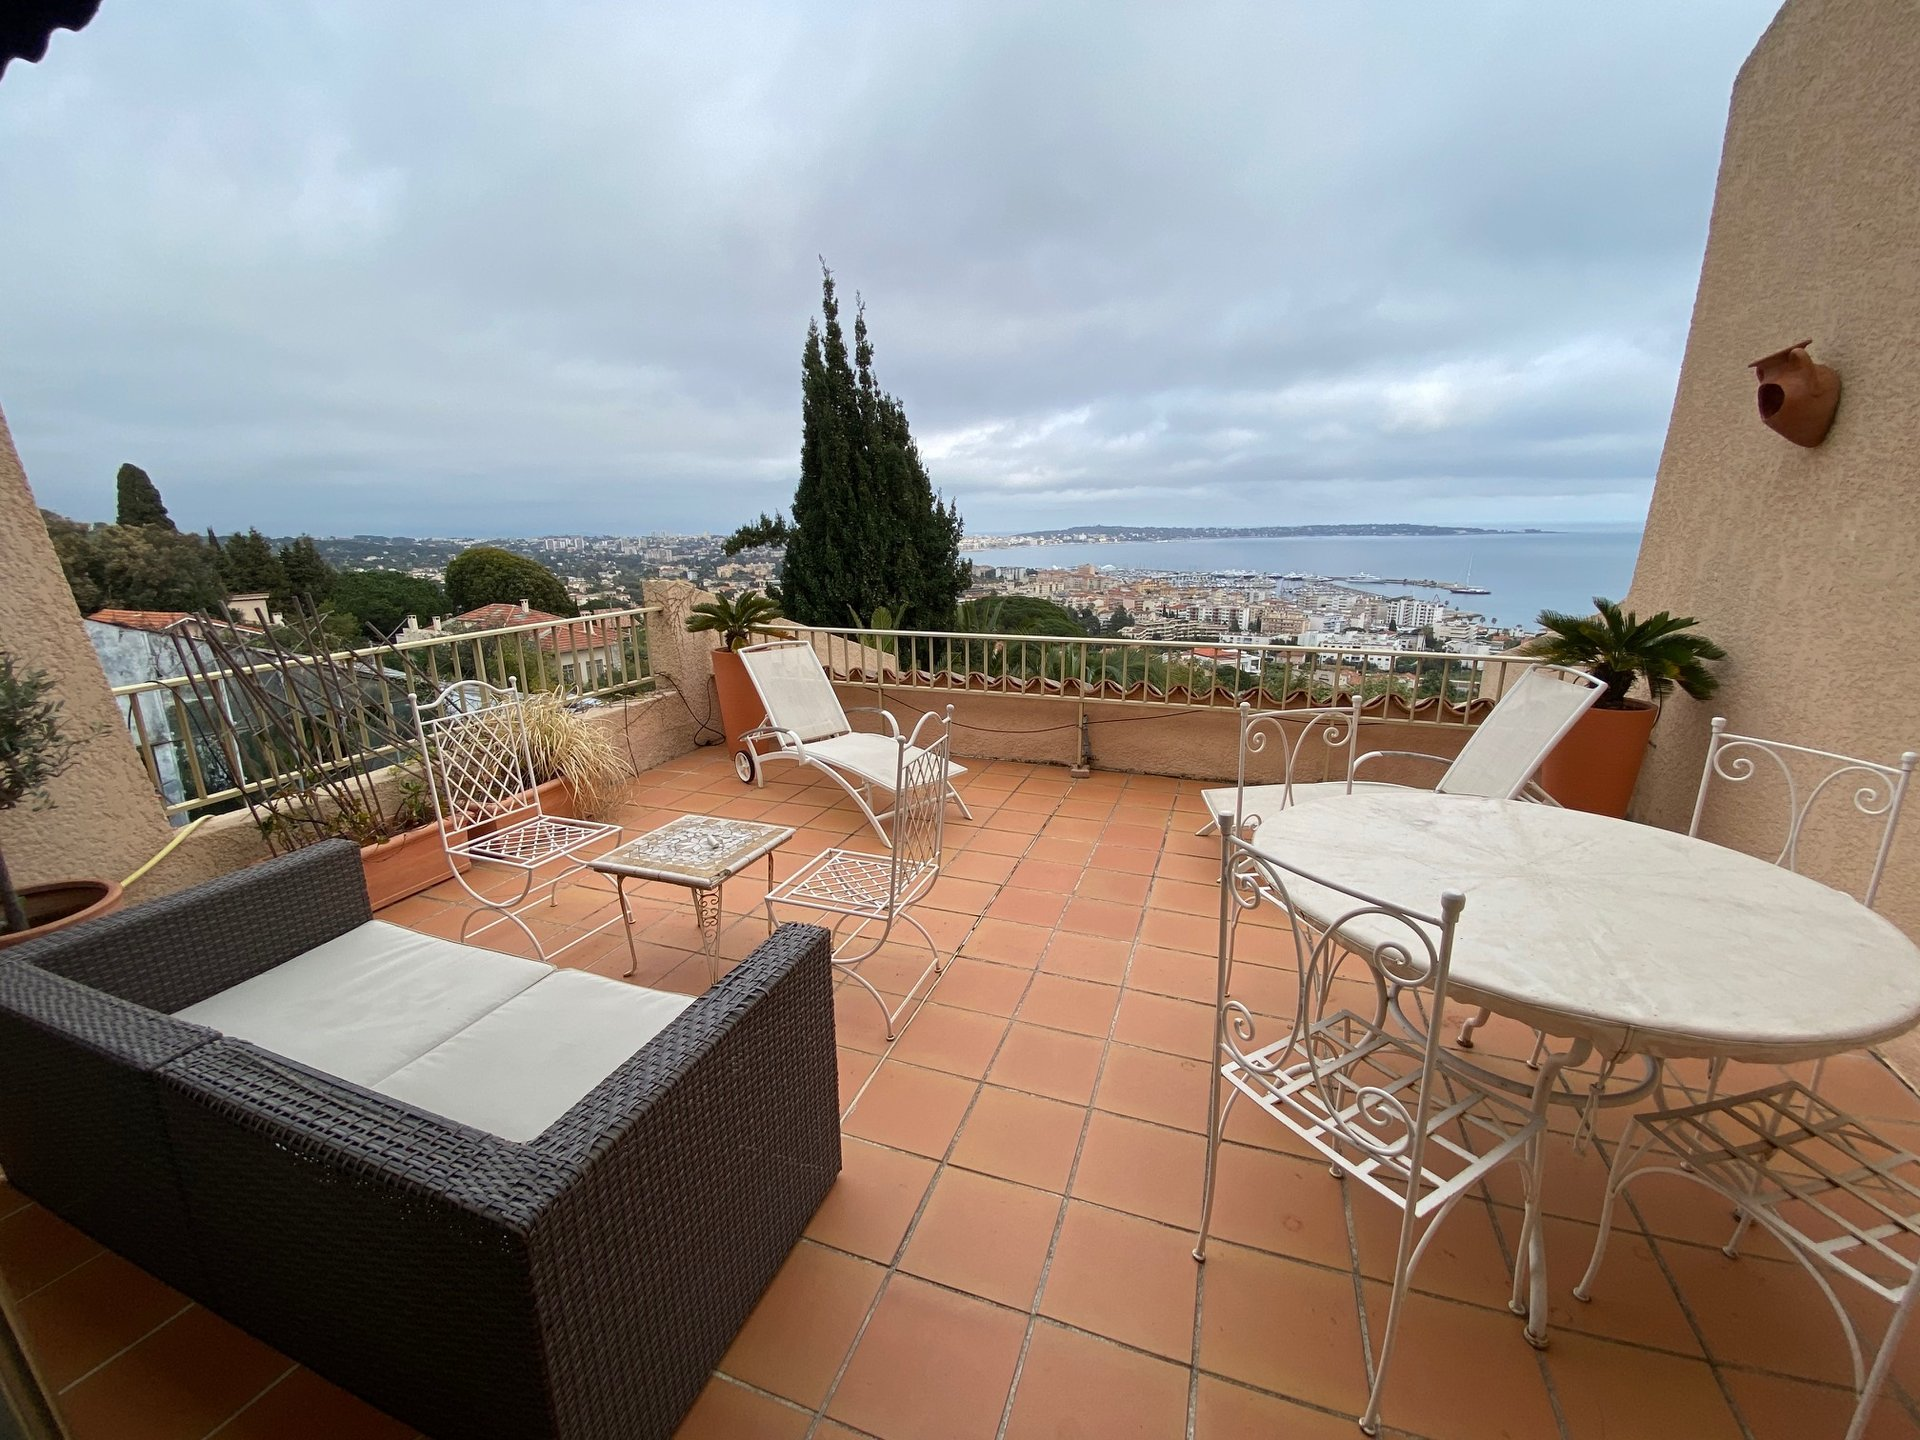 SALE 4 ROOMS QUIET ABSOLUTE PANORAMIC SEA VIEW